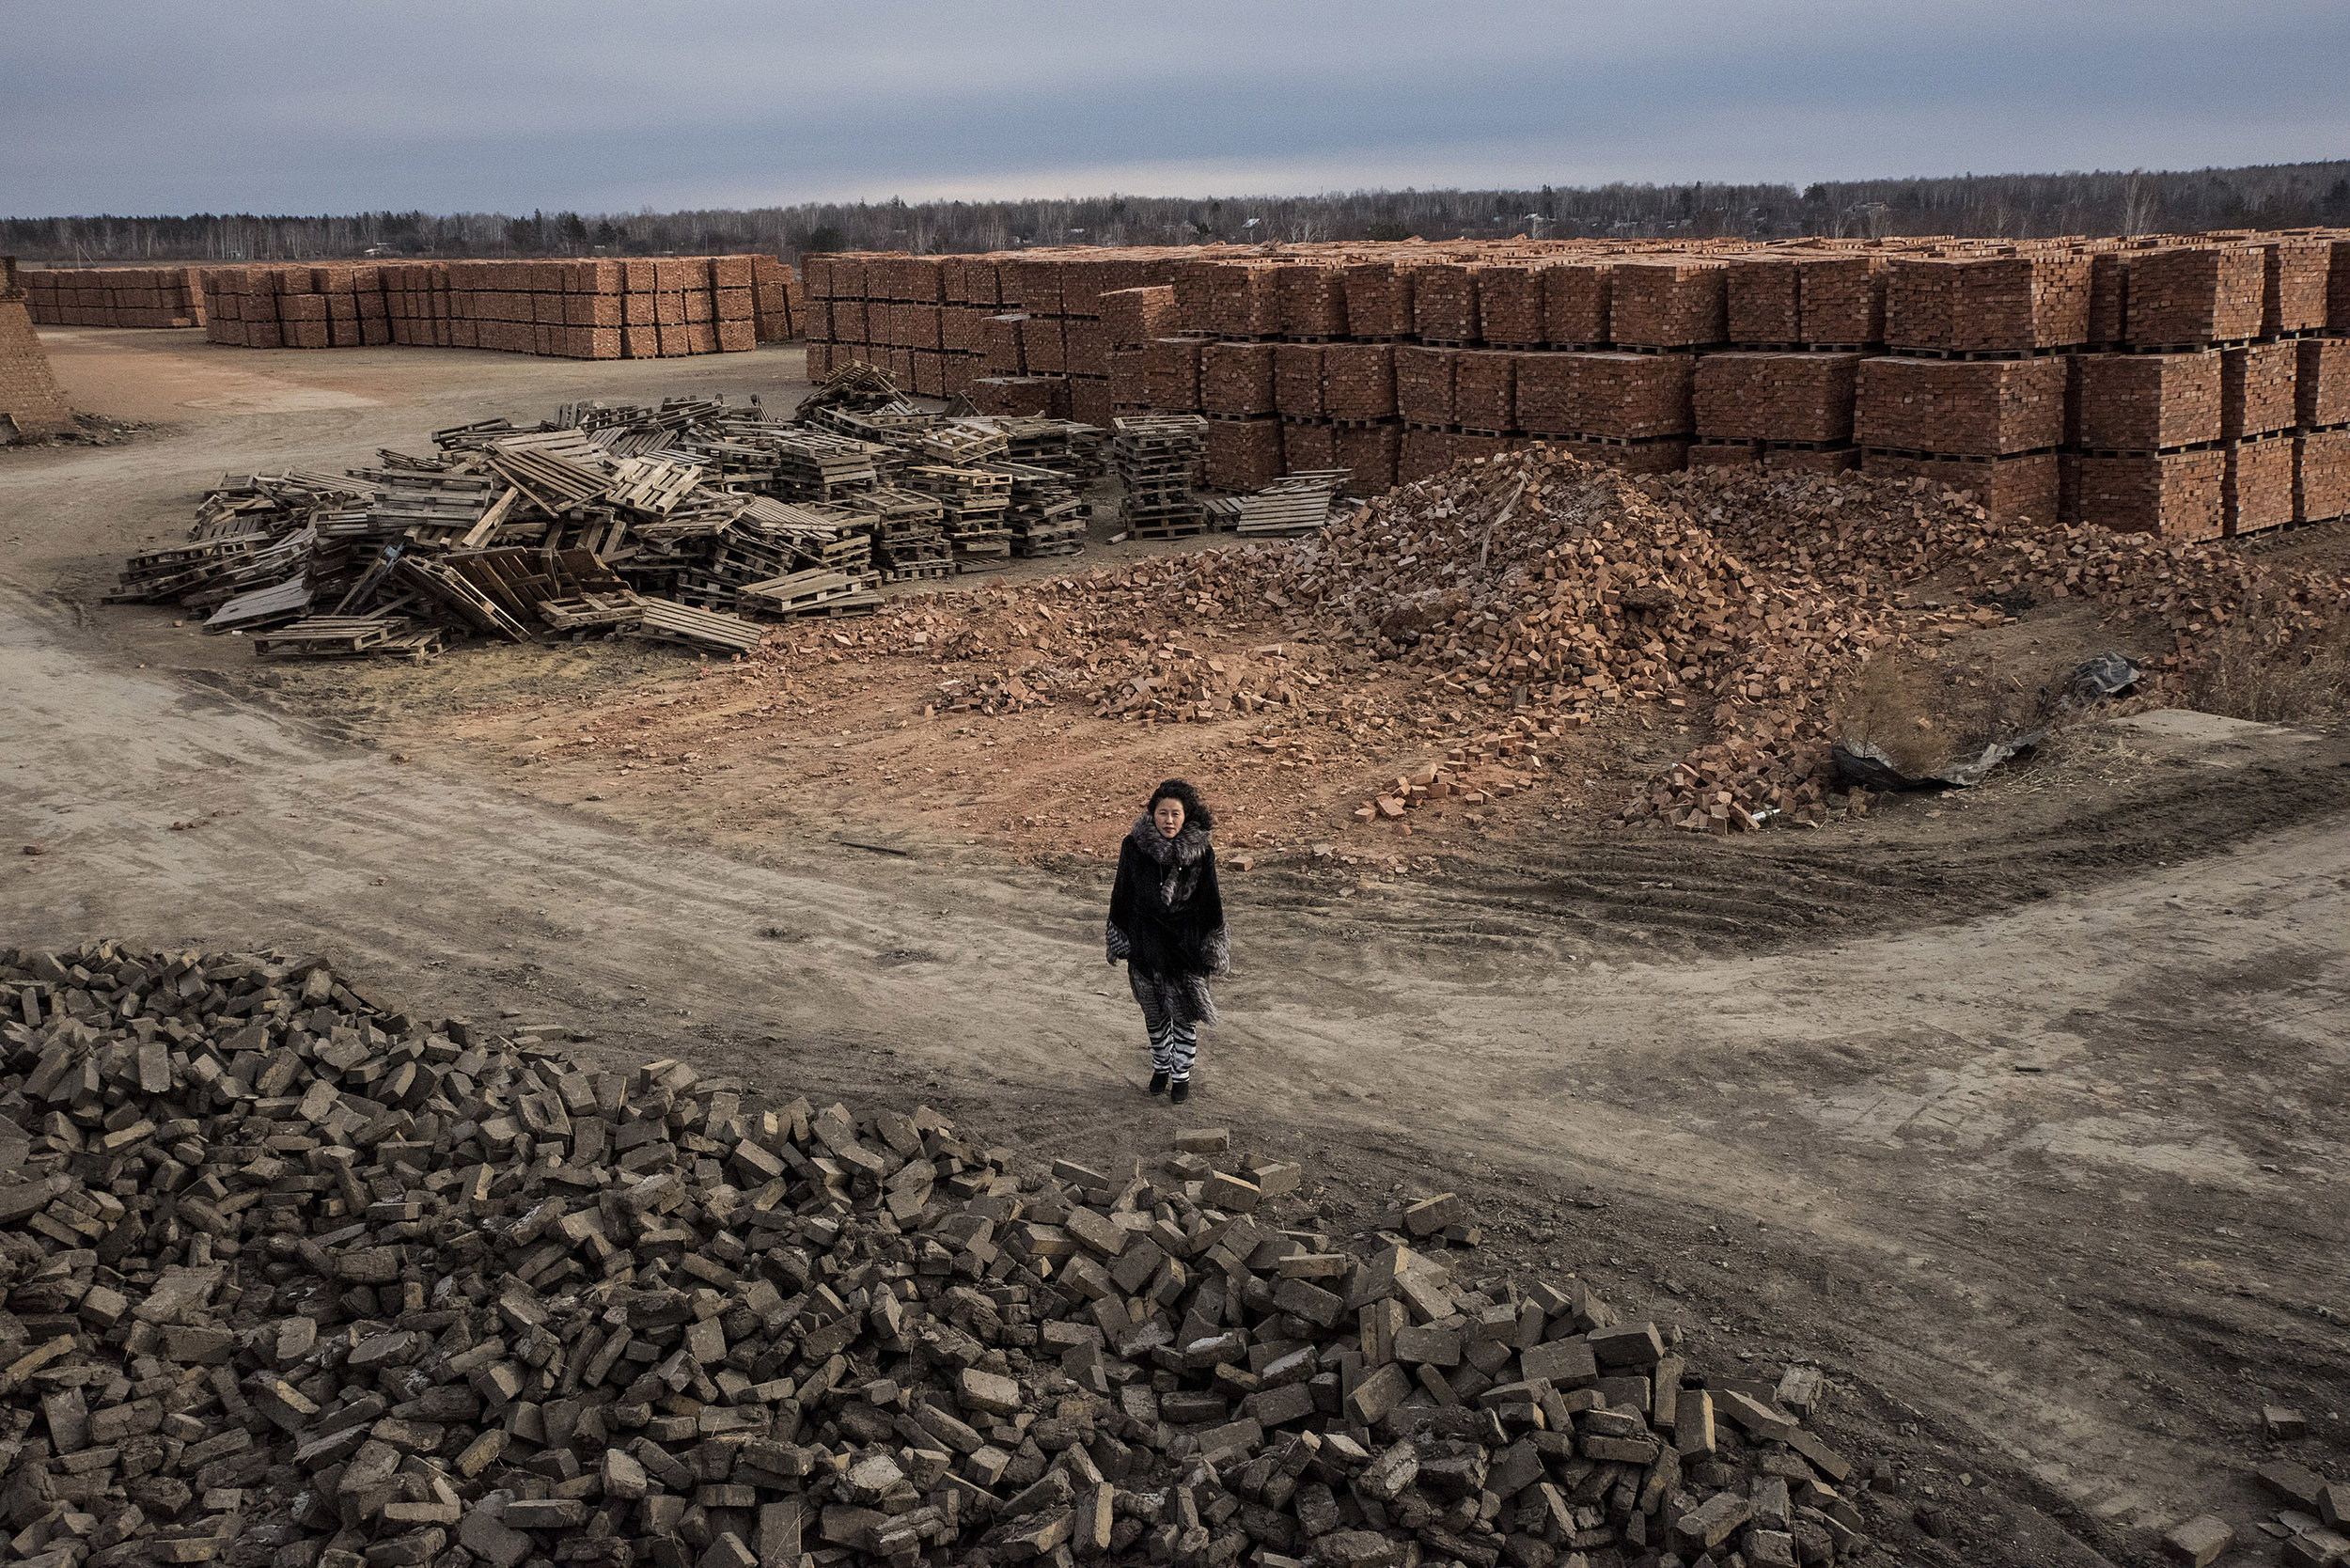 Li Lihua, a Chinese woman doing business in the Russian federation standing in a brick factory, one of four she owns in Blagoveshchensk.